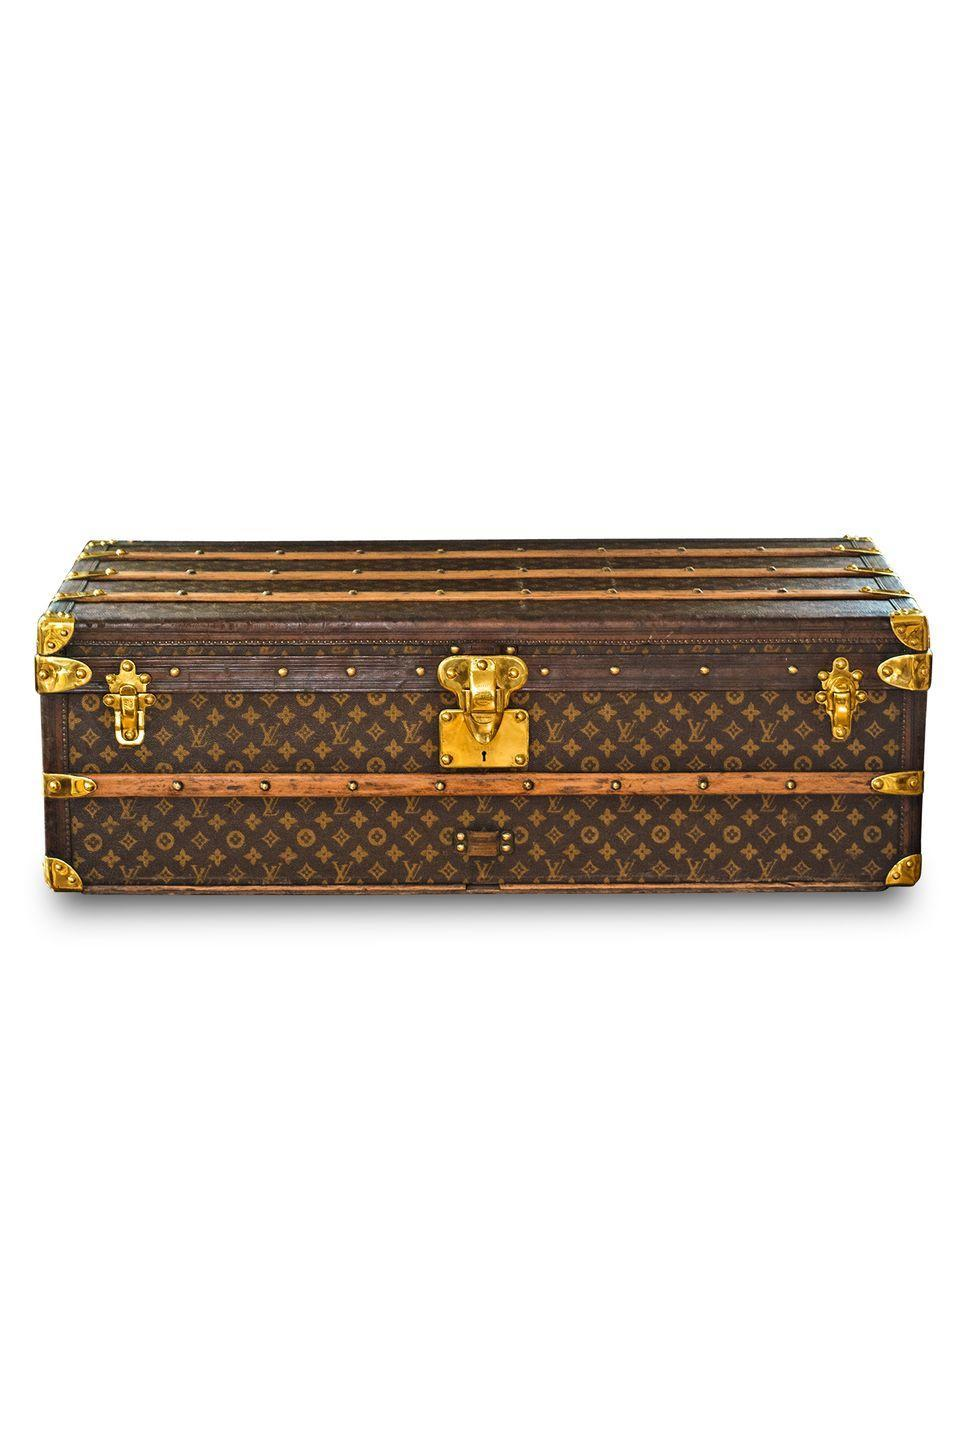 <p><strong>What it was worth (1984): </strong>$750<br></p><p><strong>What it's worth now:</strong> $15,000</p><p>This beautiful piece of designer luggage appeared in Fendelman's very first column for <em>Country Living</em> in 1984.</p>